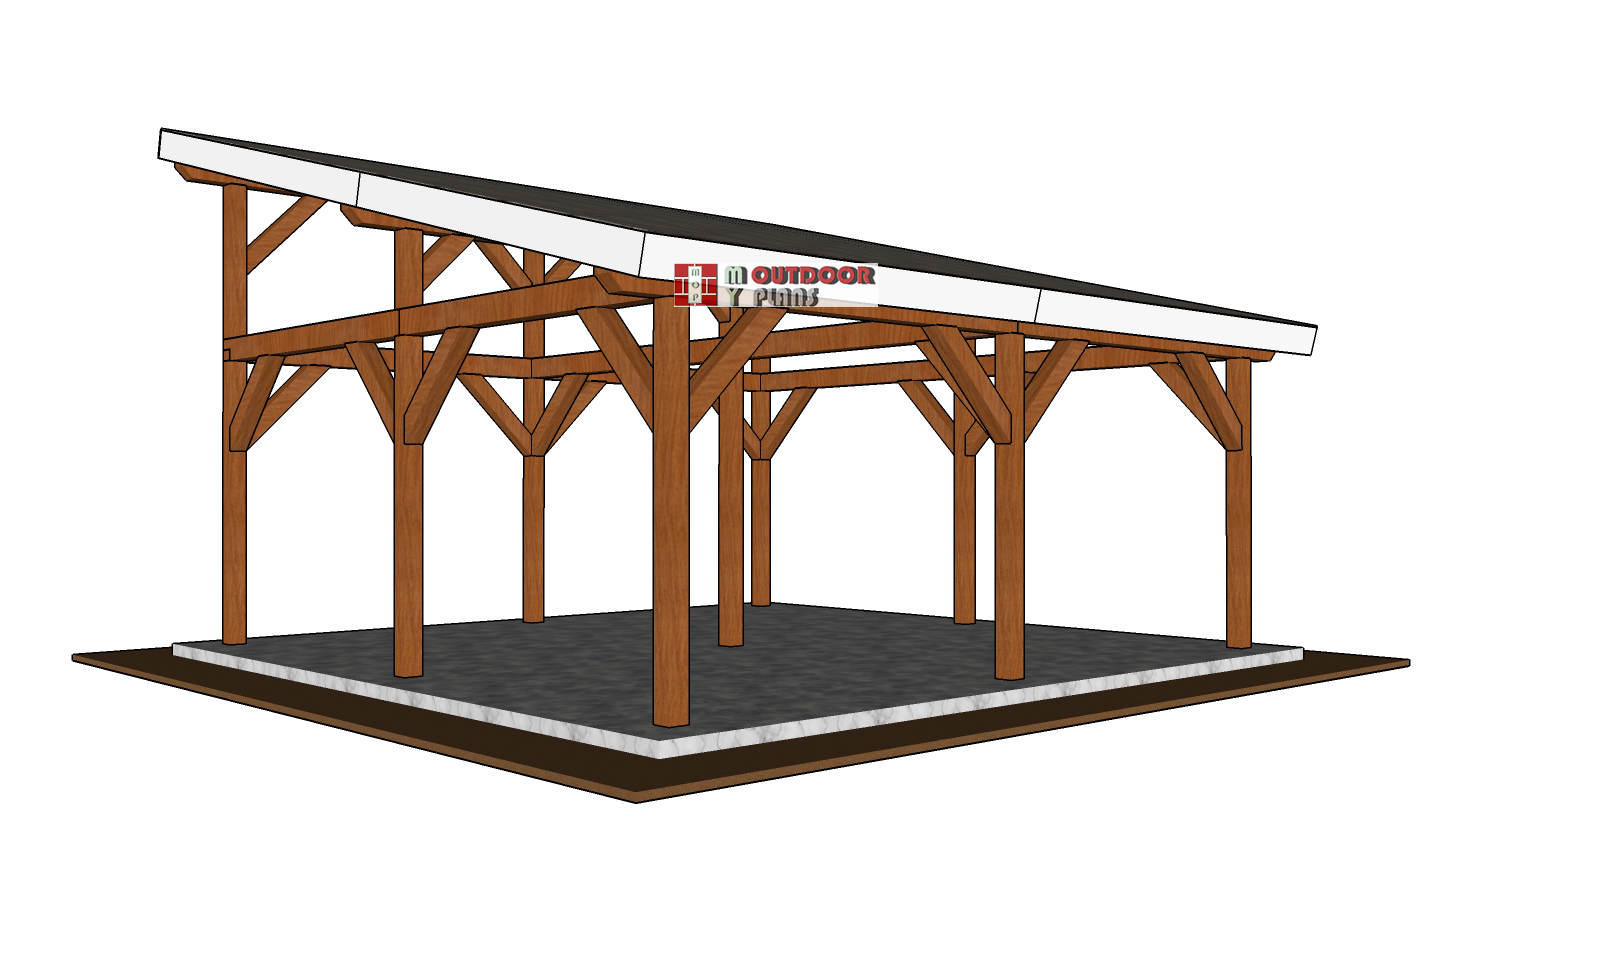 20x20 Lean to Pavilion - Free DIY Plans